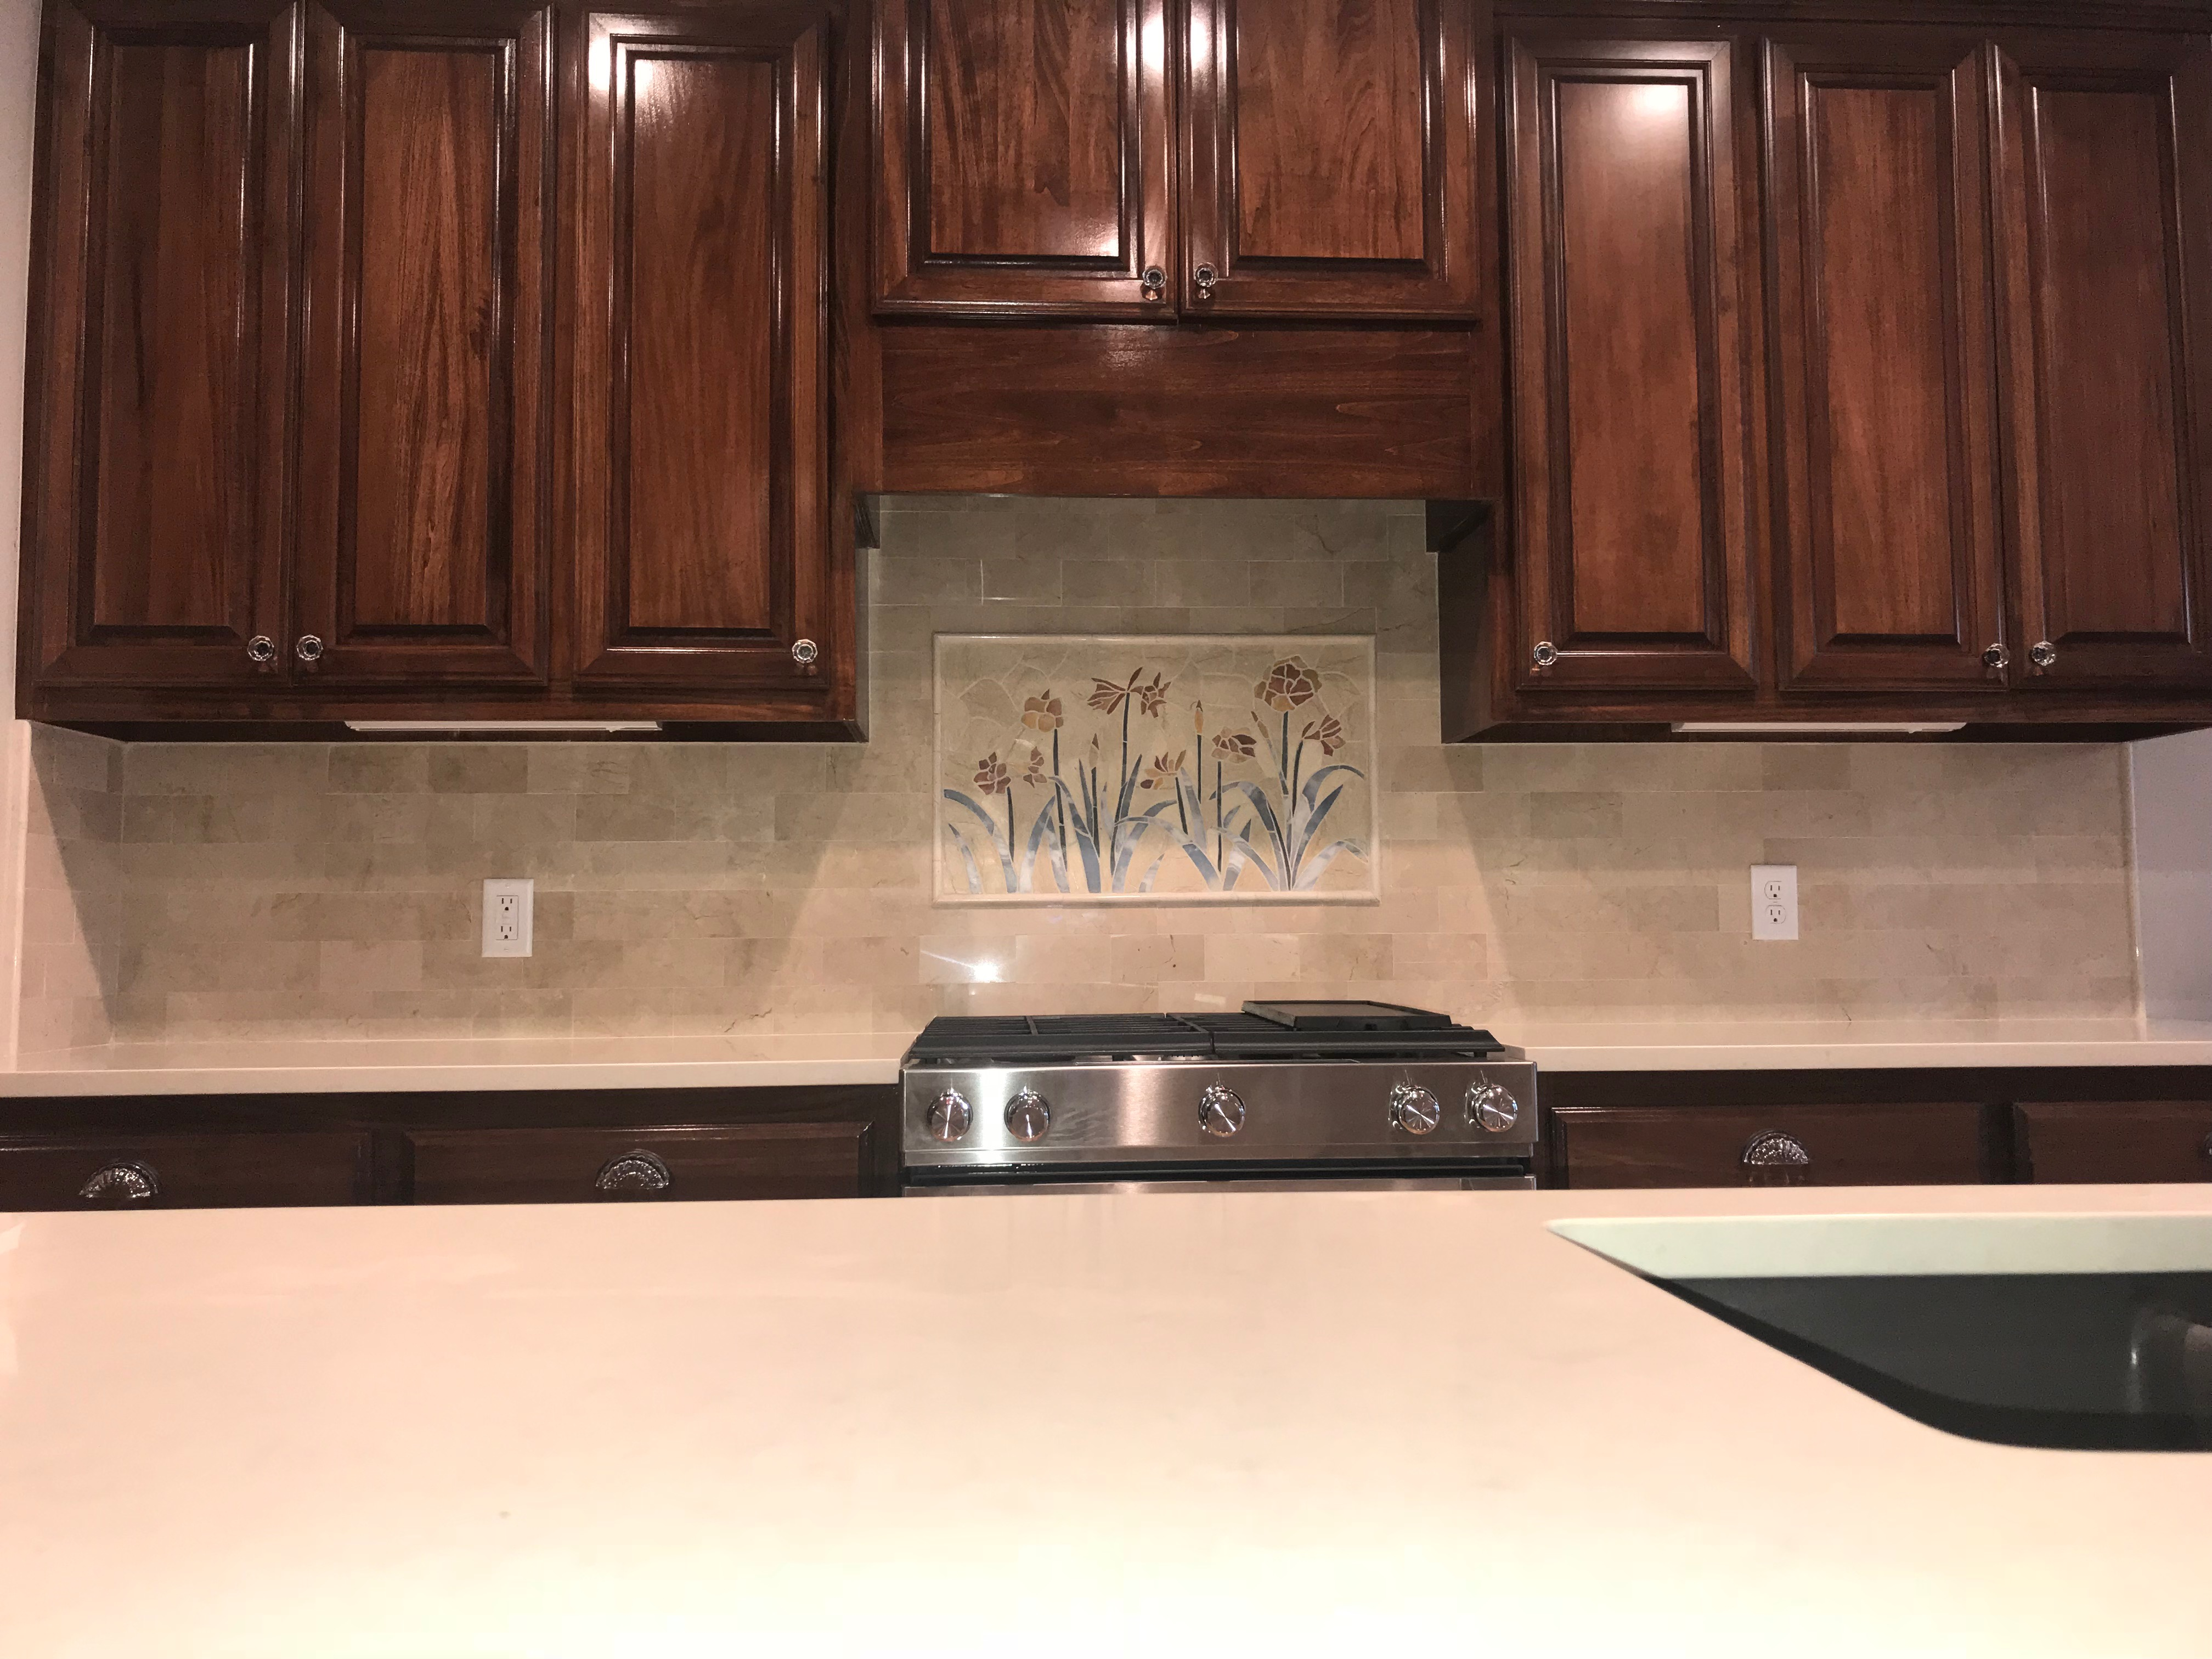 Marble splash with mural